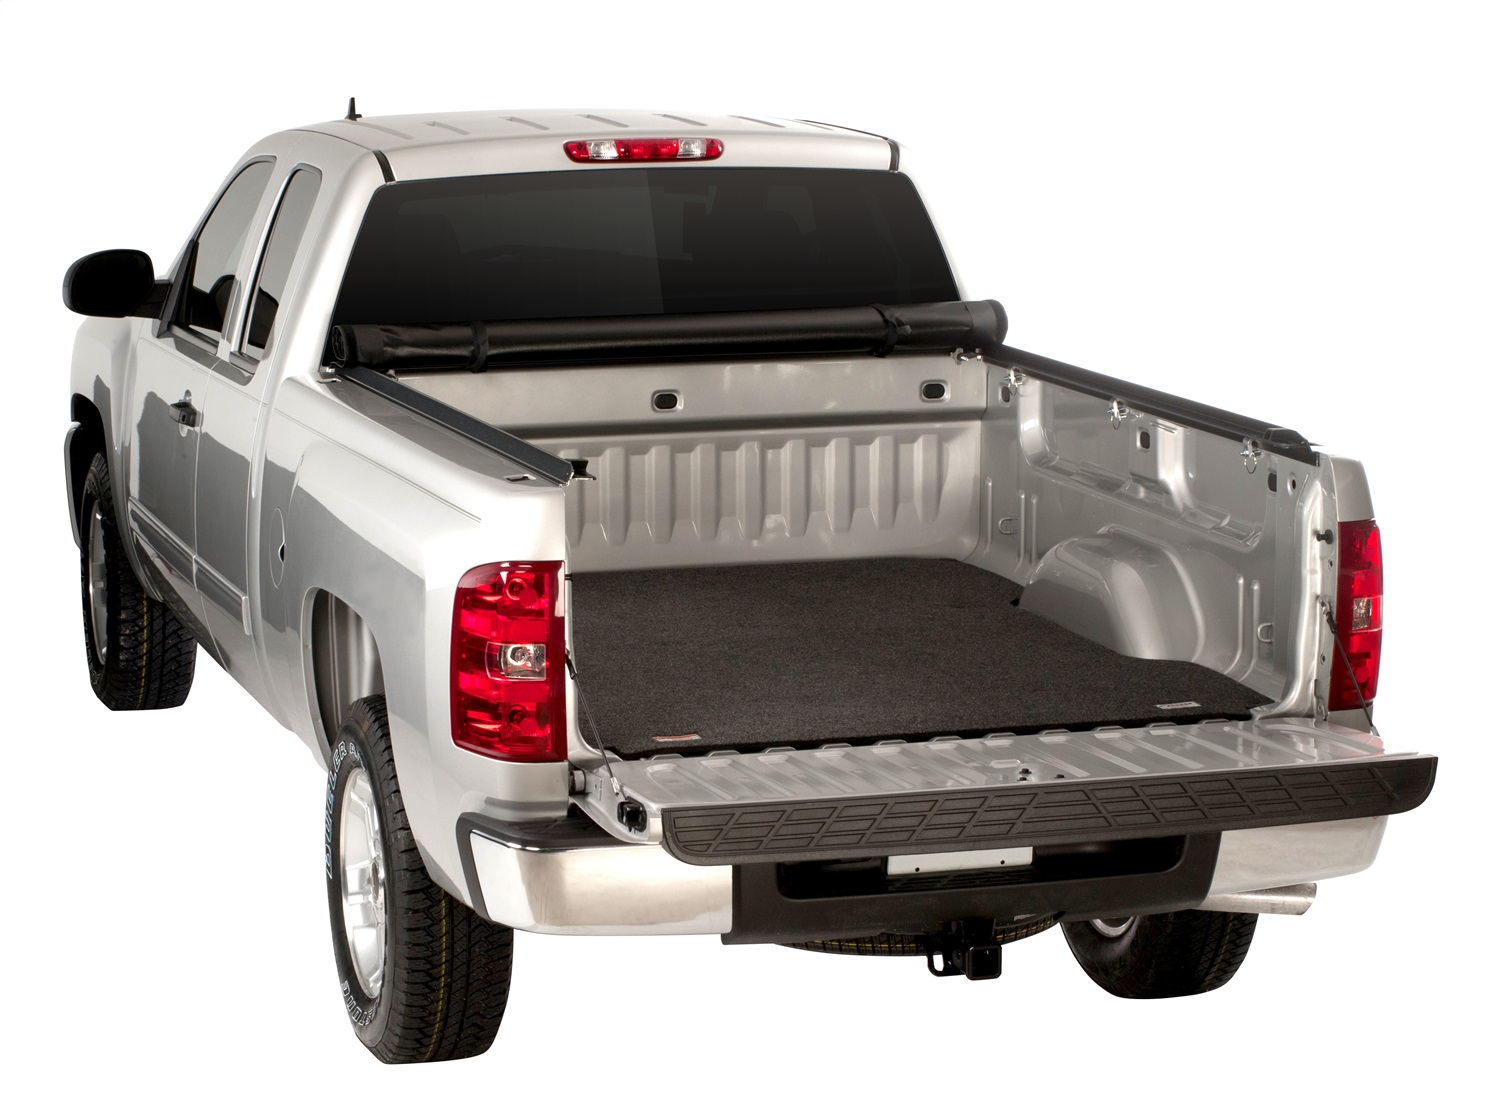 Access Cover 25030179 ACCESS Truck Bed Mat Fits 05-20 Frontier